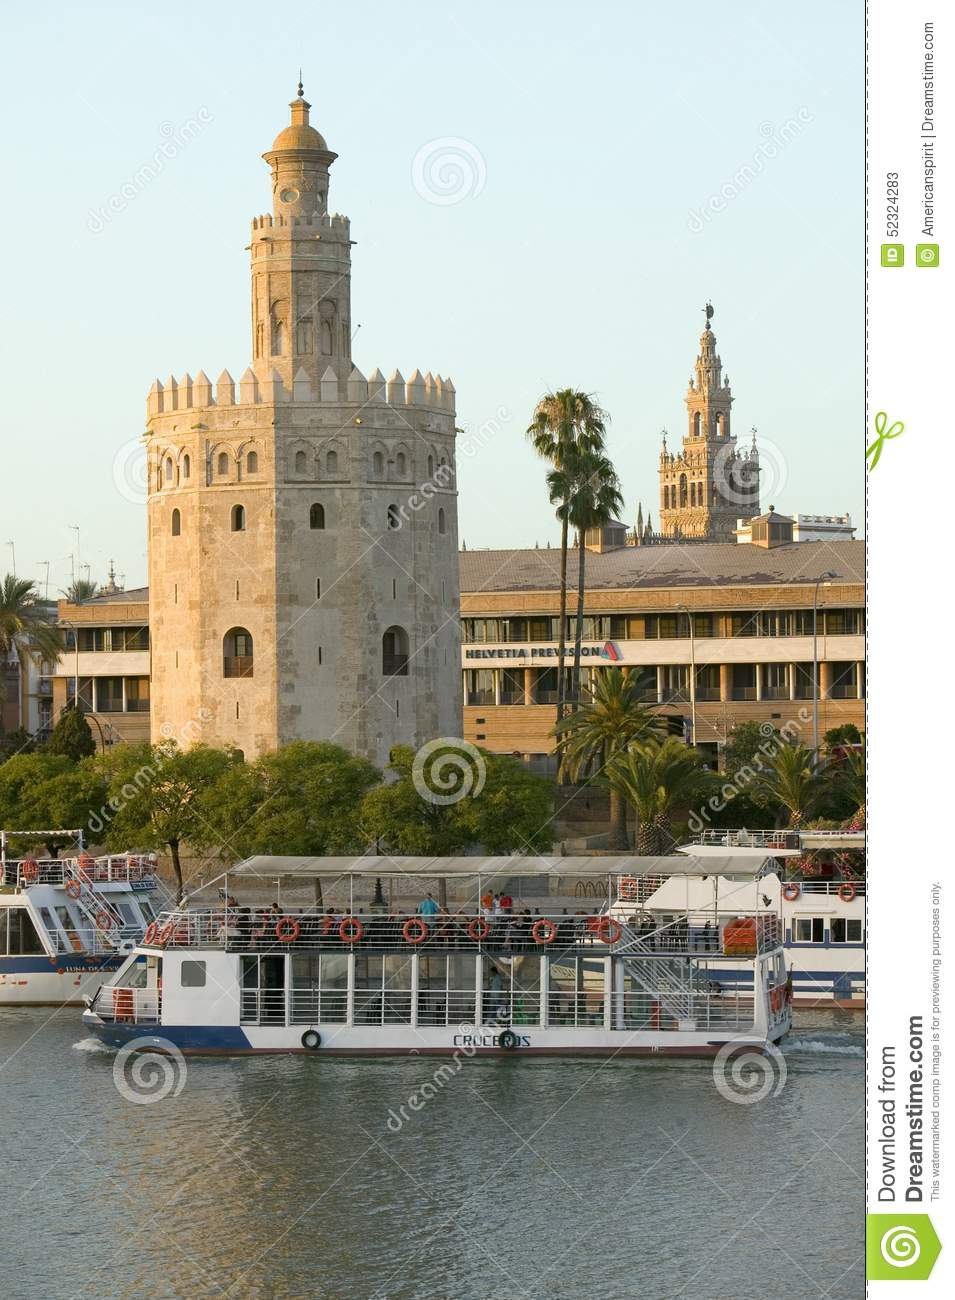 View of the tour boats and octagonal tower of Torre del Oro makes golden reflection on Canal de Alfonso of Rio Guadalquivir